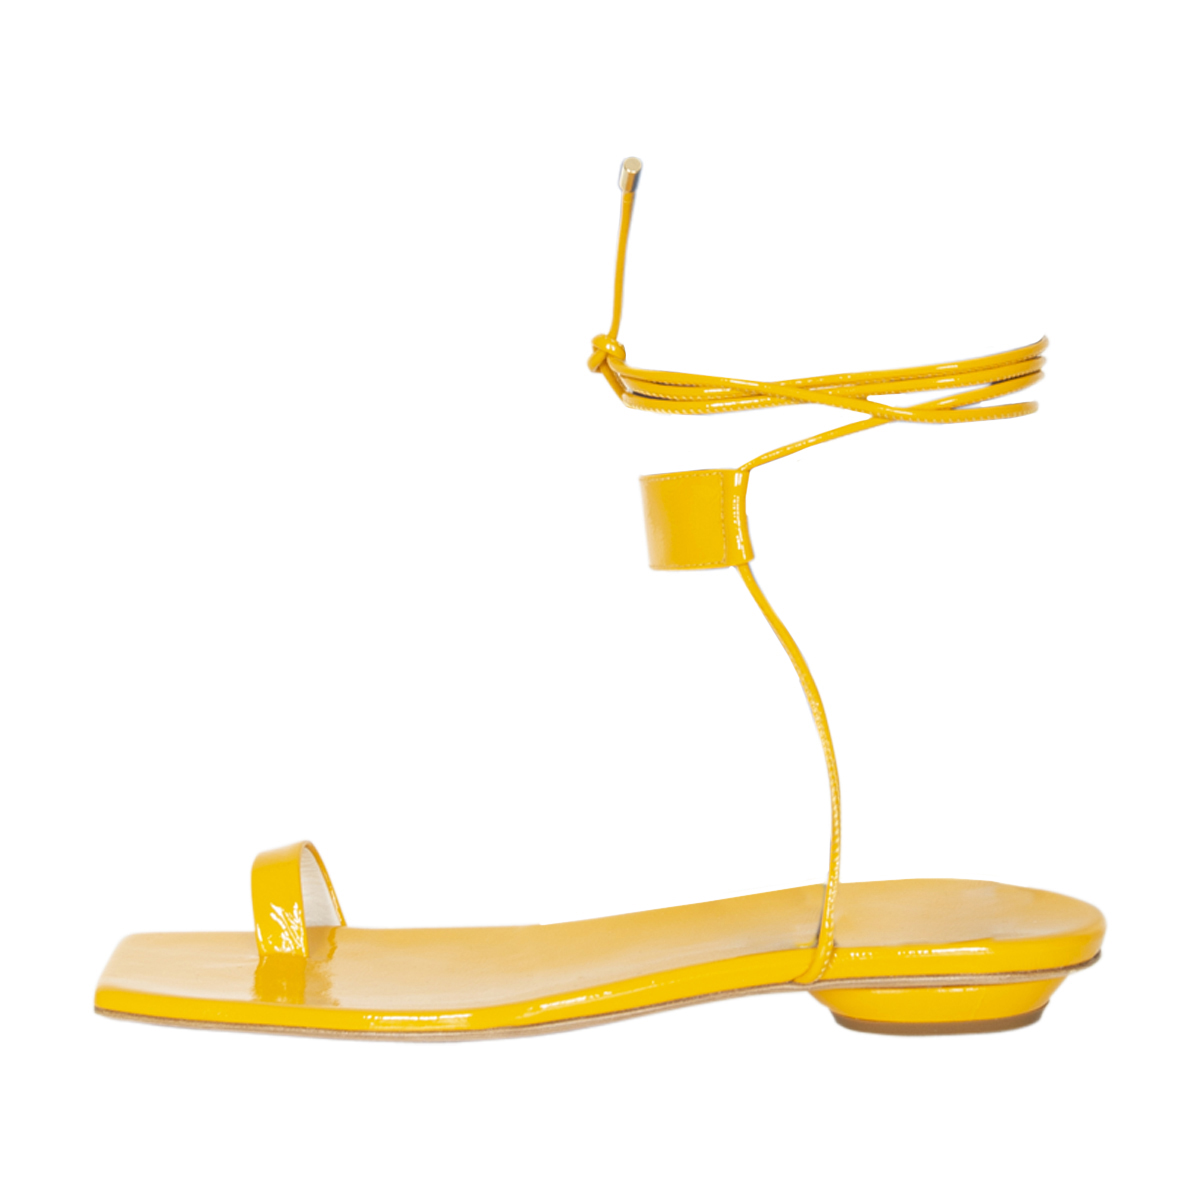 Tibi Shin Crinkle Patent Sandals – New Condition